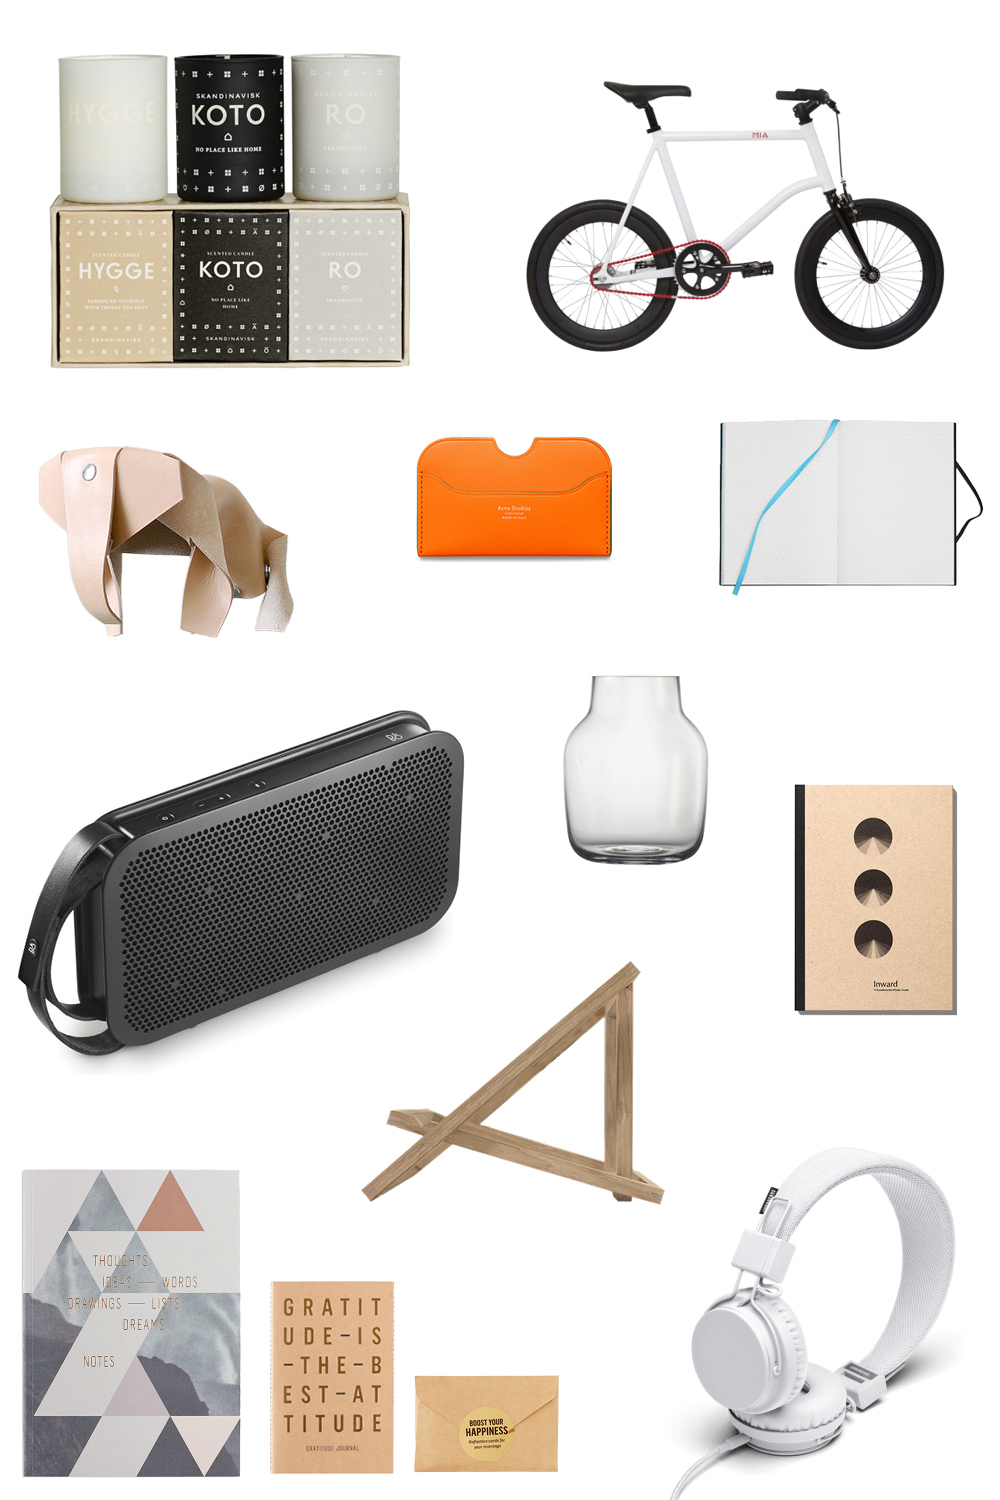 Design & Interiors Minimalist Gifts Collage | Scandinavia Standard